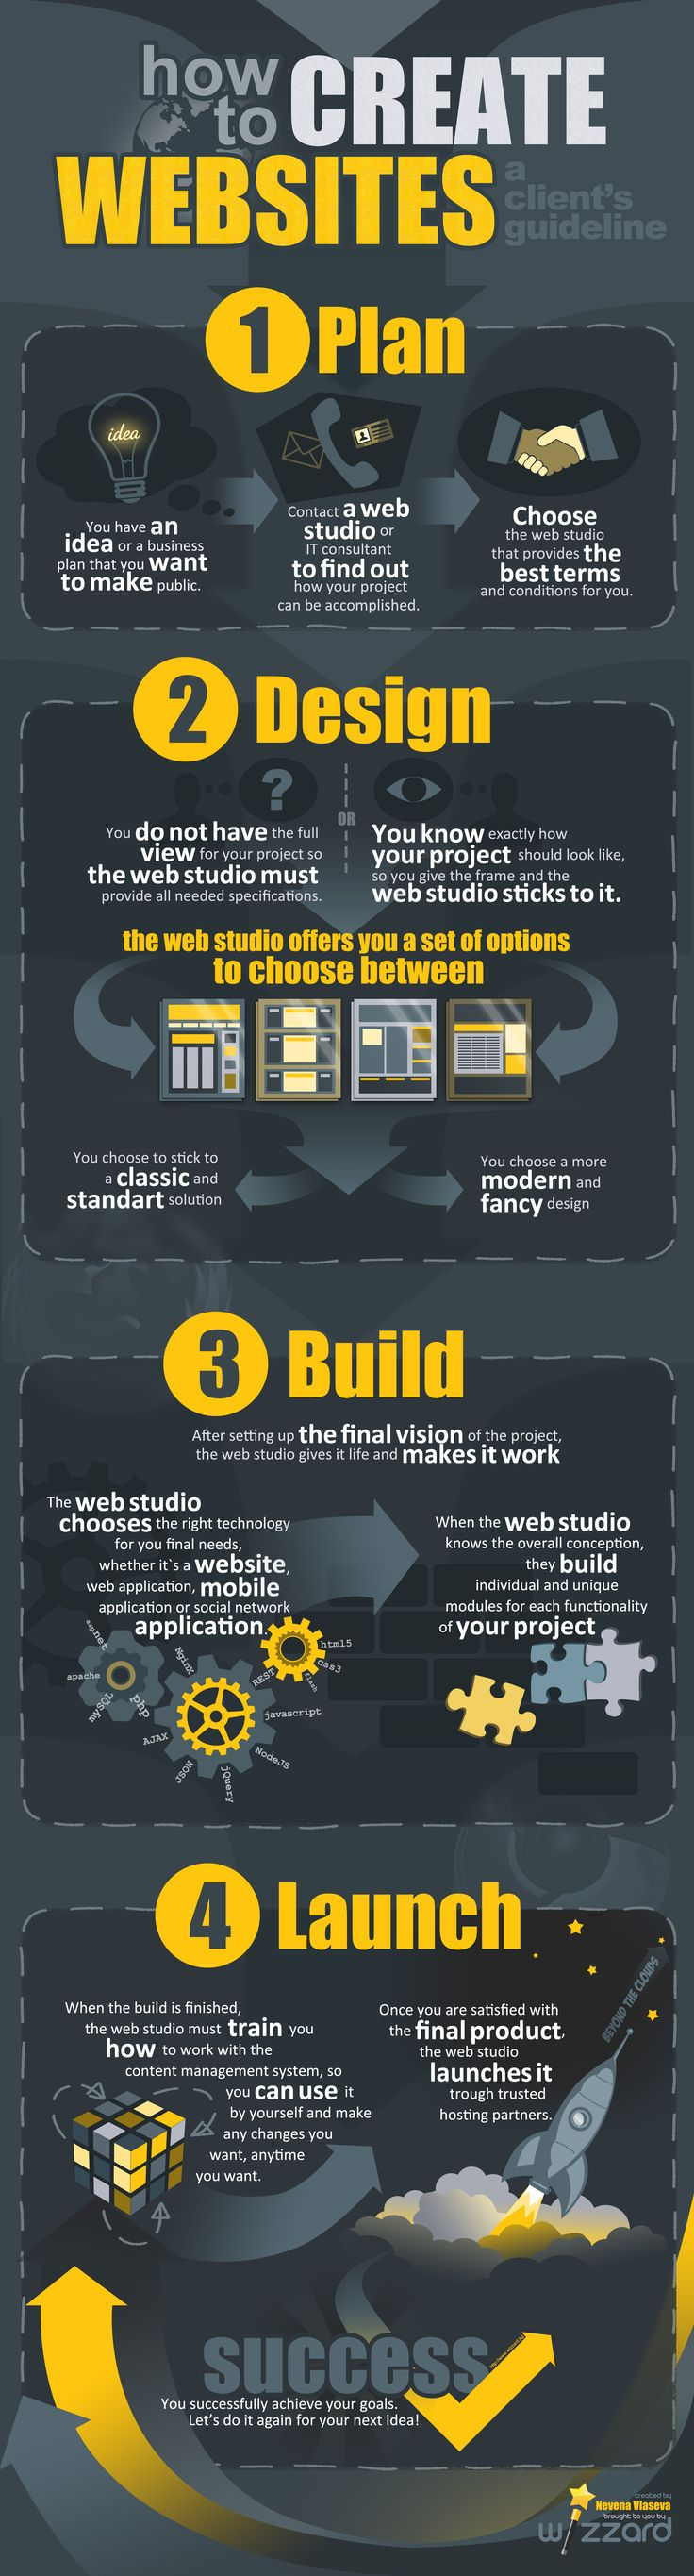 web studio website infographic